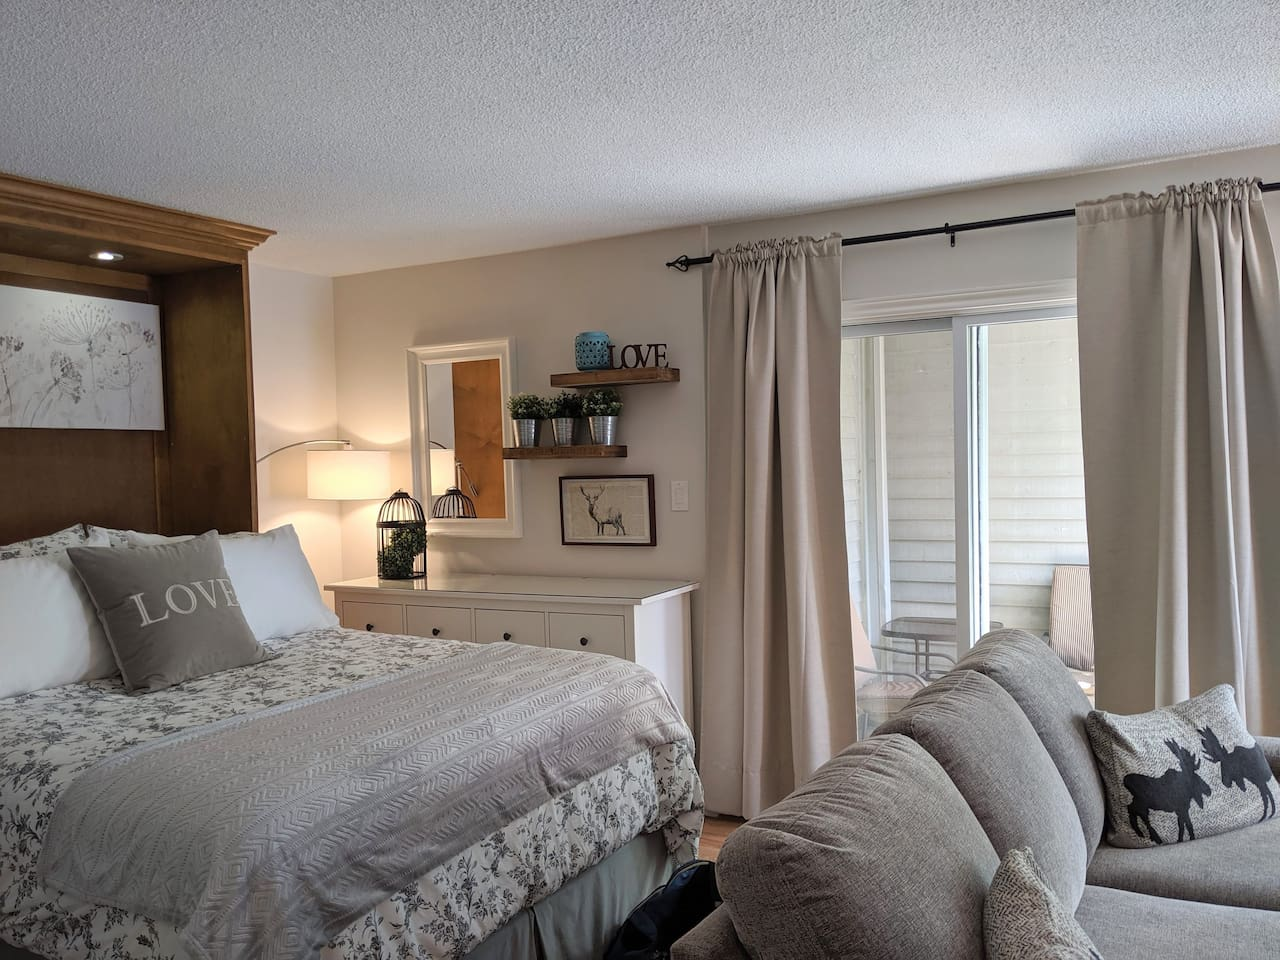 Blue Mountain studio condo with community salt water pool, hot tub, tennis courts, hiking trails, ski -in/out access,  free village shuttle, fireplace, full kitchen, deep jetted tub and more!  Just updated (July 2019) to create your perfect getaway!